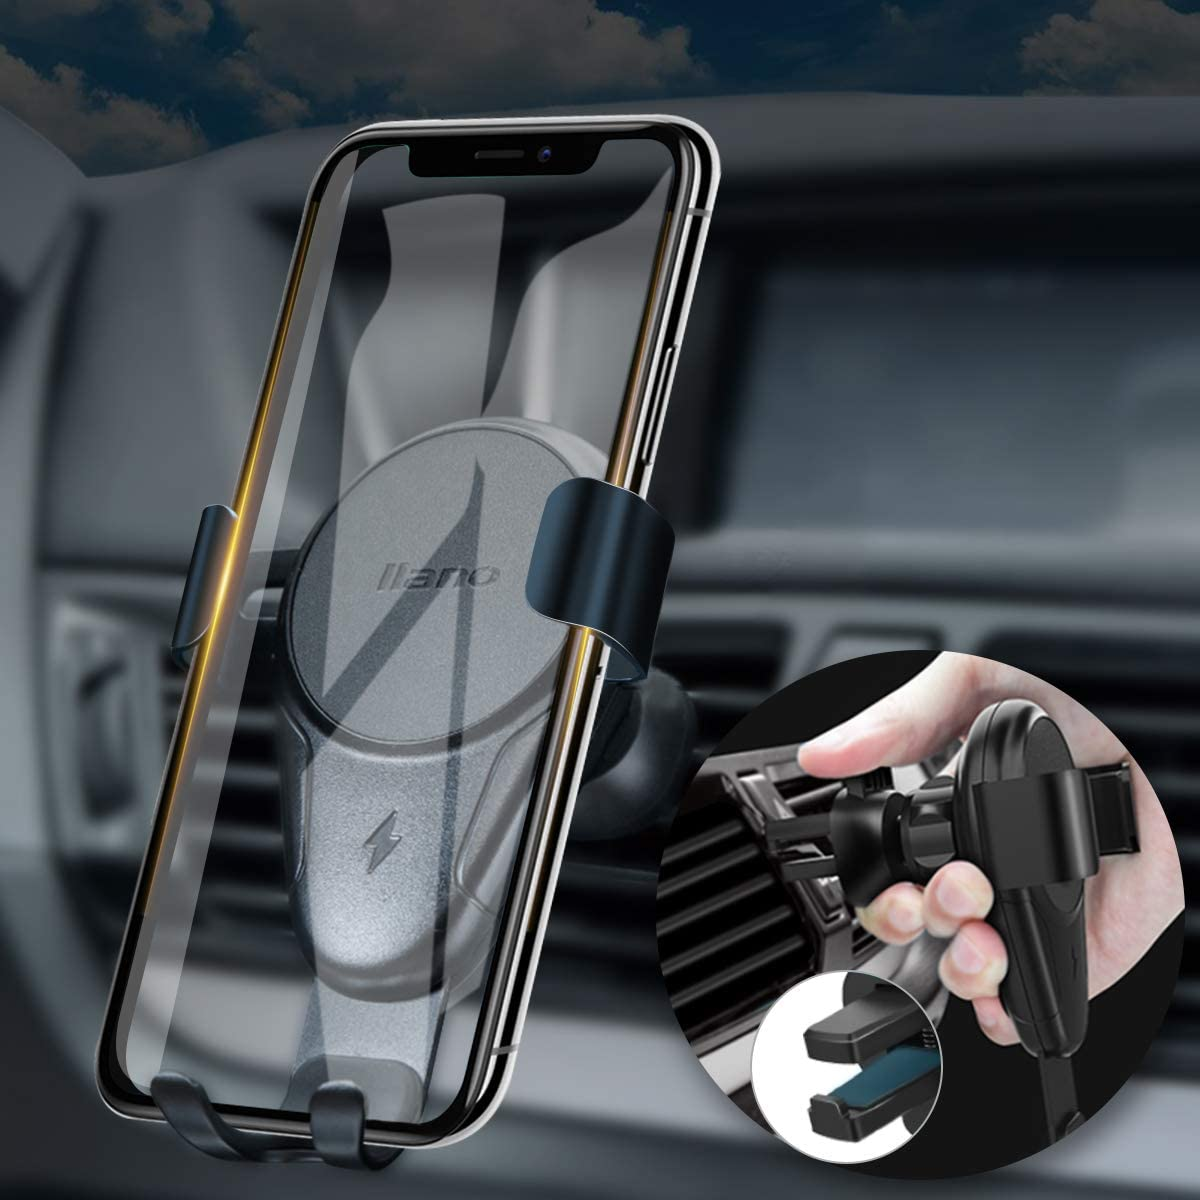 Nllano Wireless Car Charger Auto-Clamp Phone Holder Compatible Galaxy S10//S10+//S9//S9+//S8//S8+//Note 9//Note 8 Black iPhone Xs//Xs Max//XR//X//8//8 Plus and More